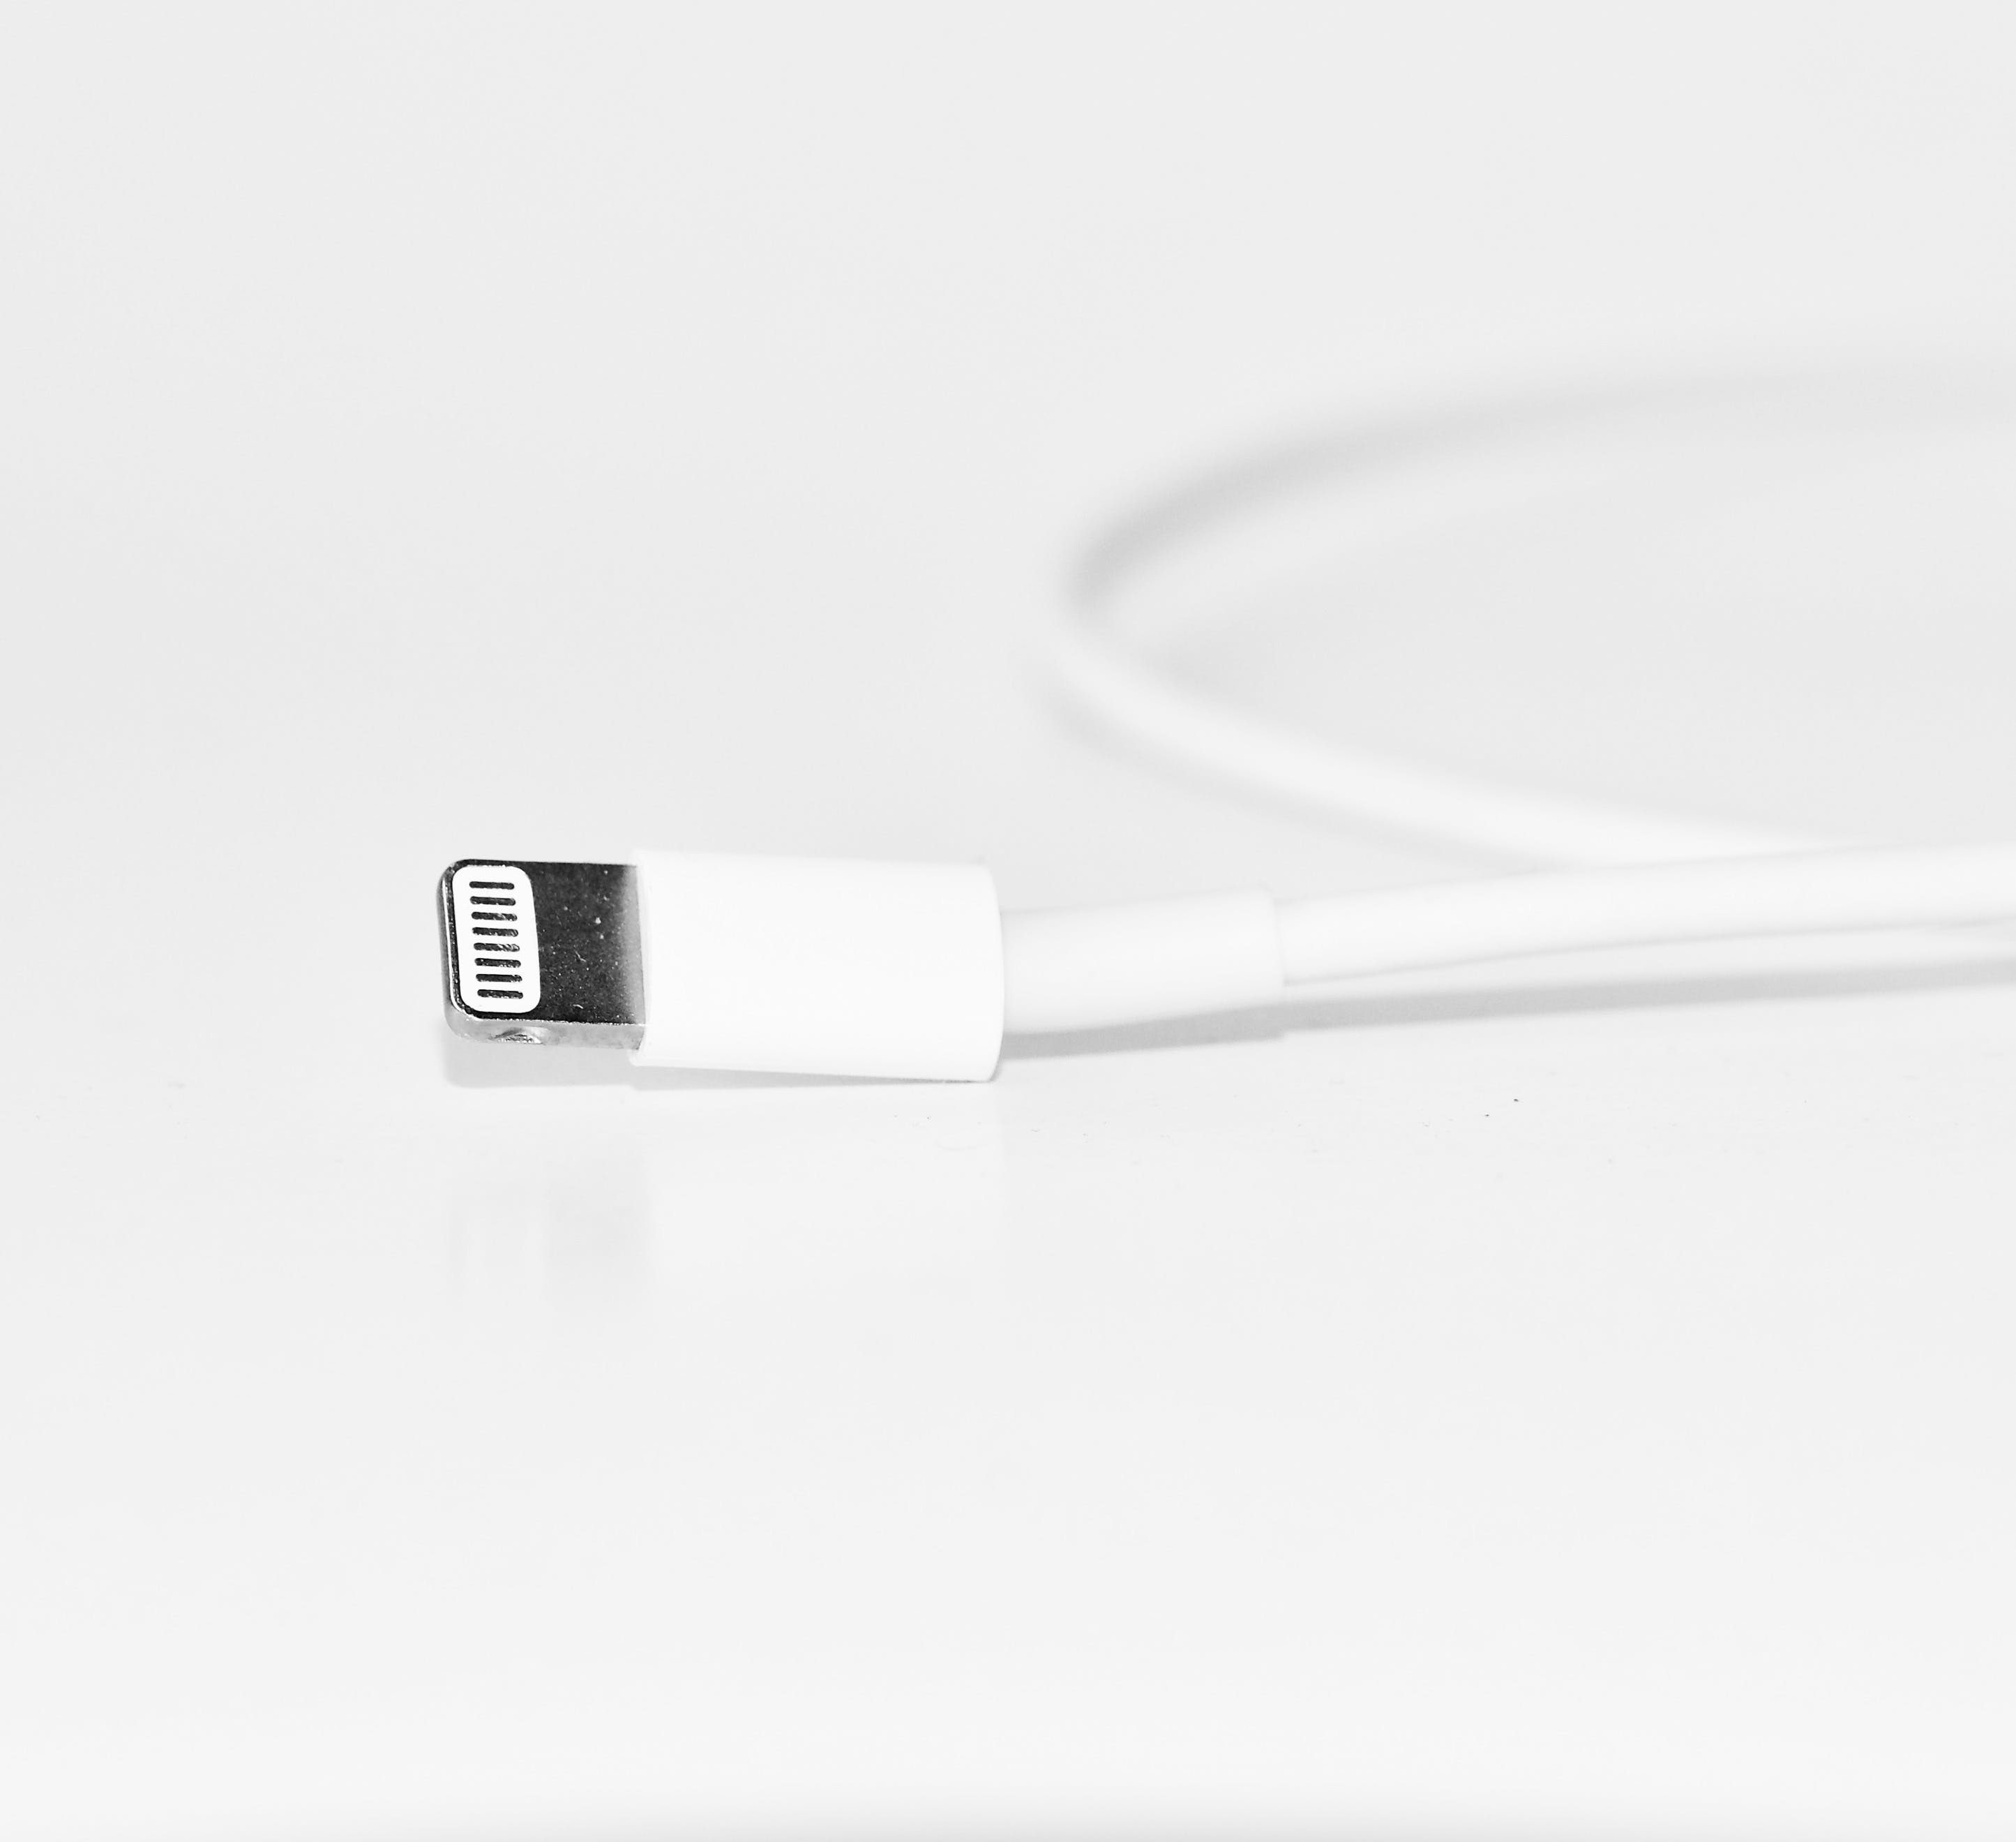 Close-Up Photography of White iPhone Charger